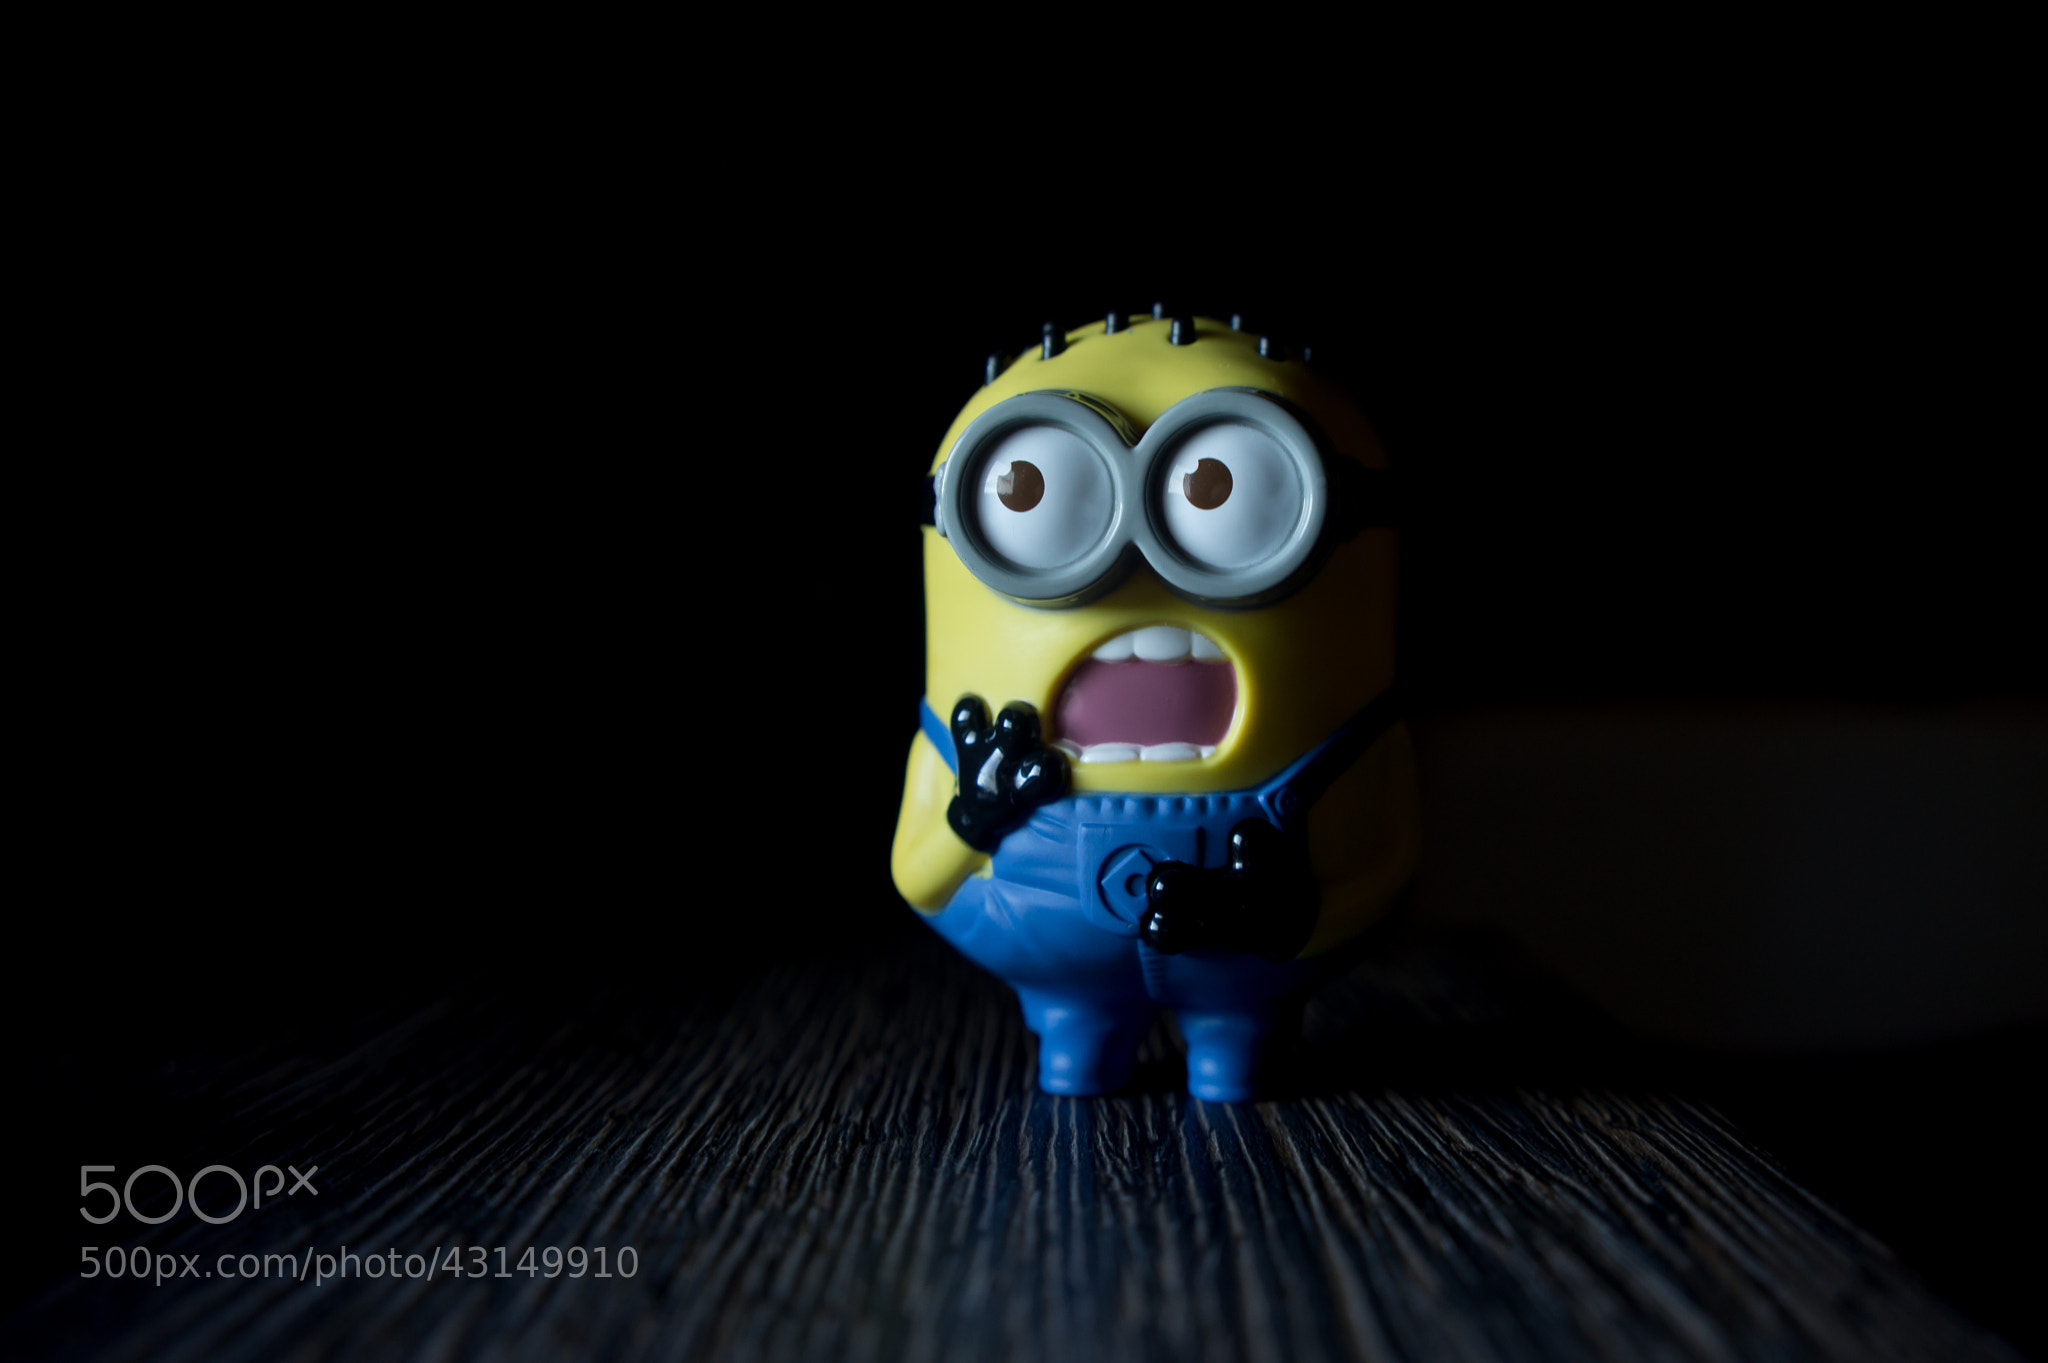 Photograph DAY 105 - Who's afraid of the dark? DAY 105 - Who's afraid of the dark? by Alex Georgescu on 500px